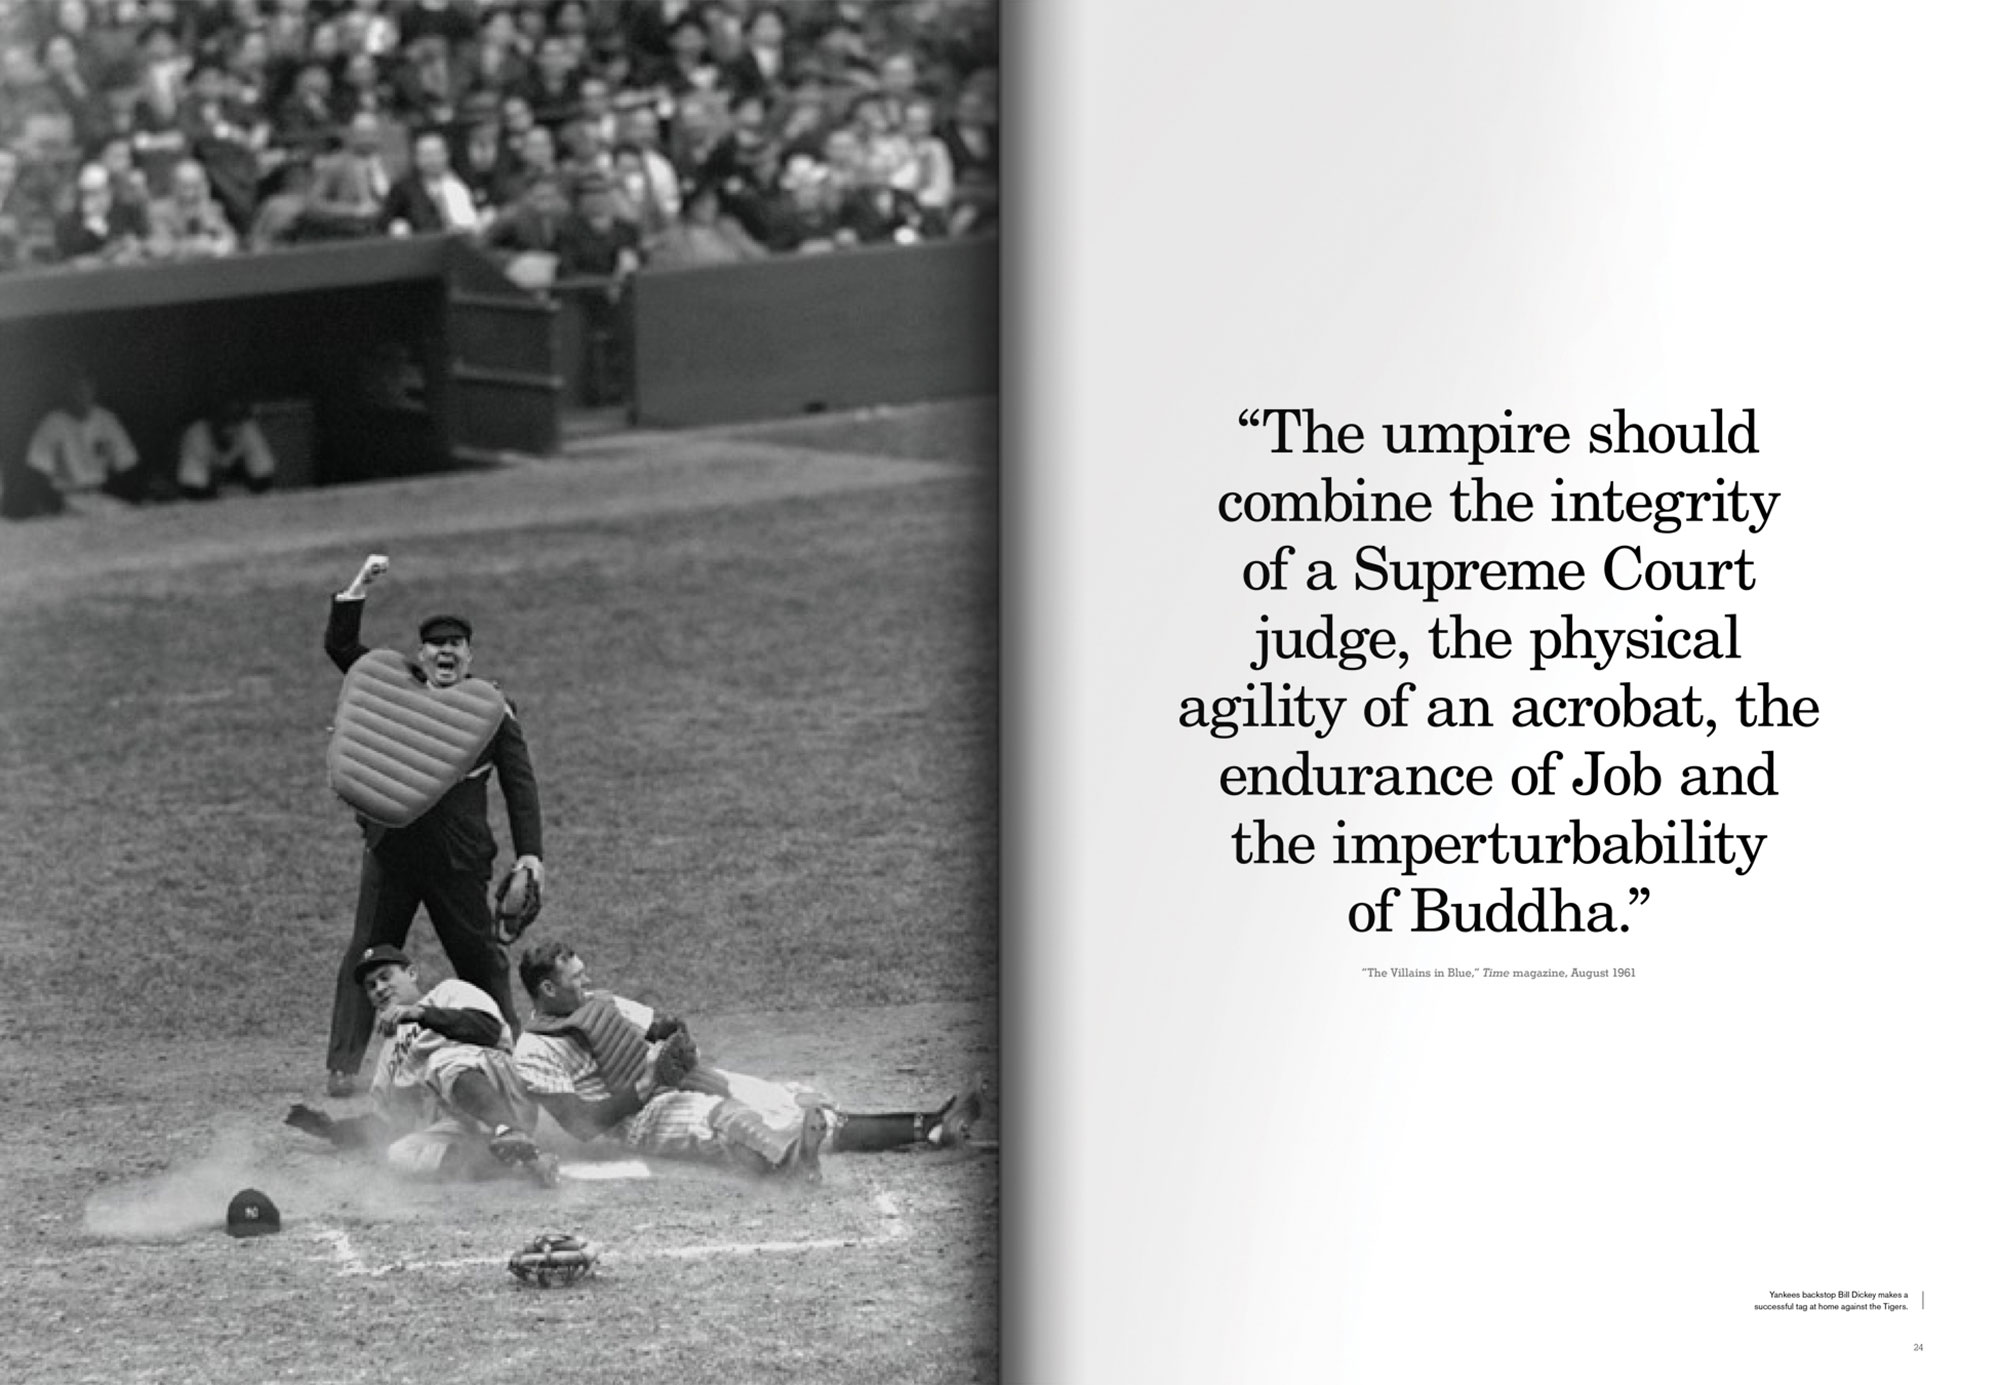 The Umpire in a baseball game